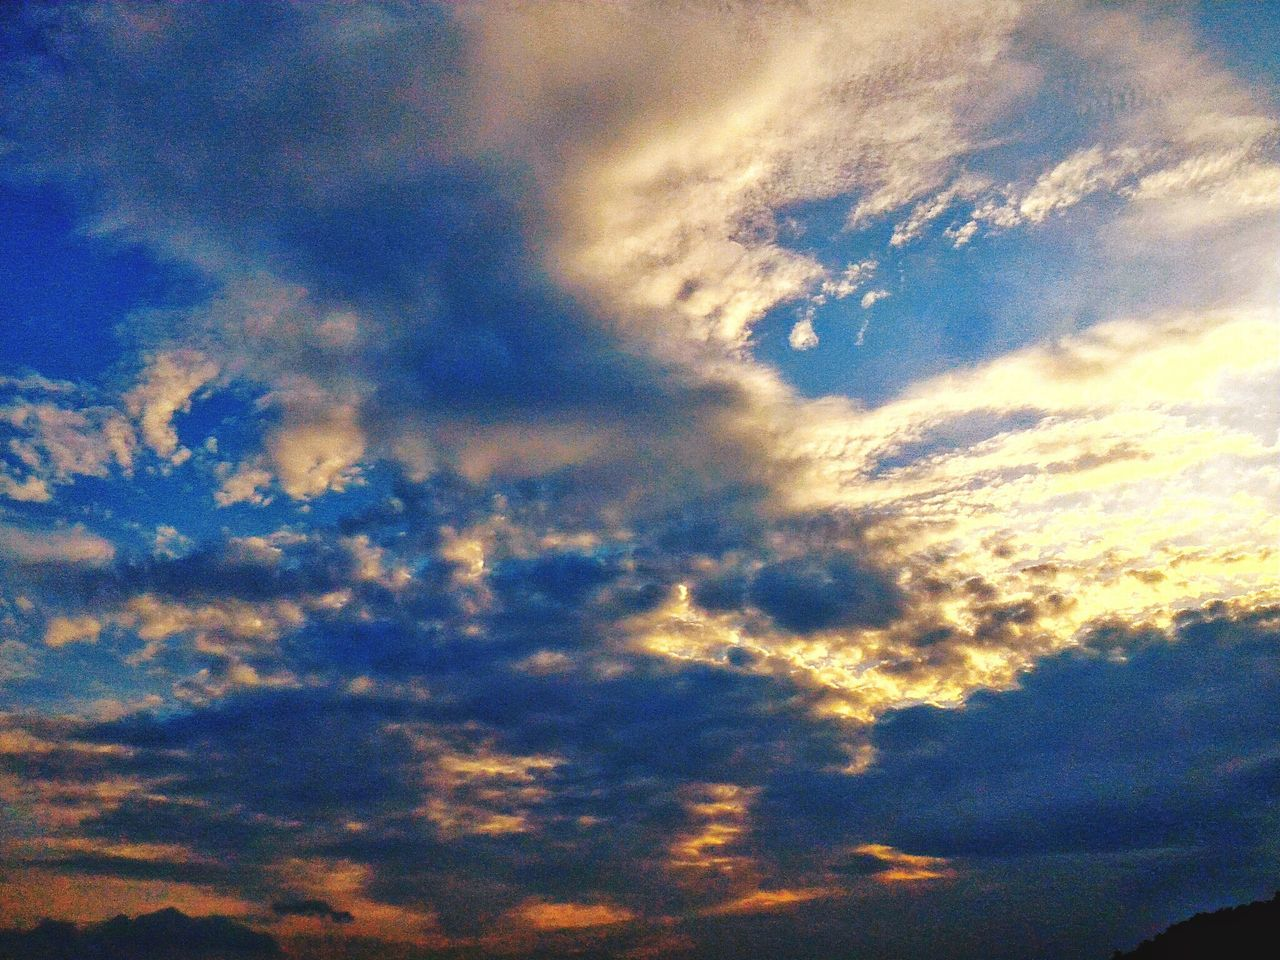 sky, beauty in nature, cloud - sky, nature, low angle view, sky only, backgrounds, scenics, cloudscape, dramatic sky, atmospheric mood, tranquility, no people, full frame, sunset, tranquil scene, outdoors, blue, day